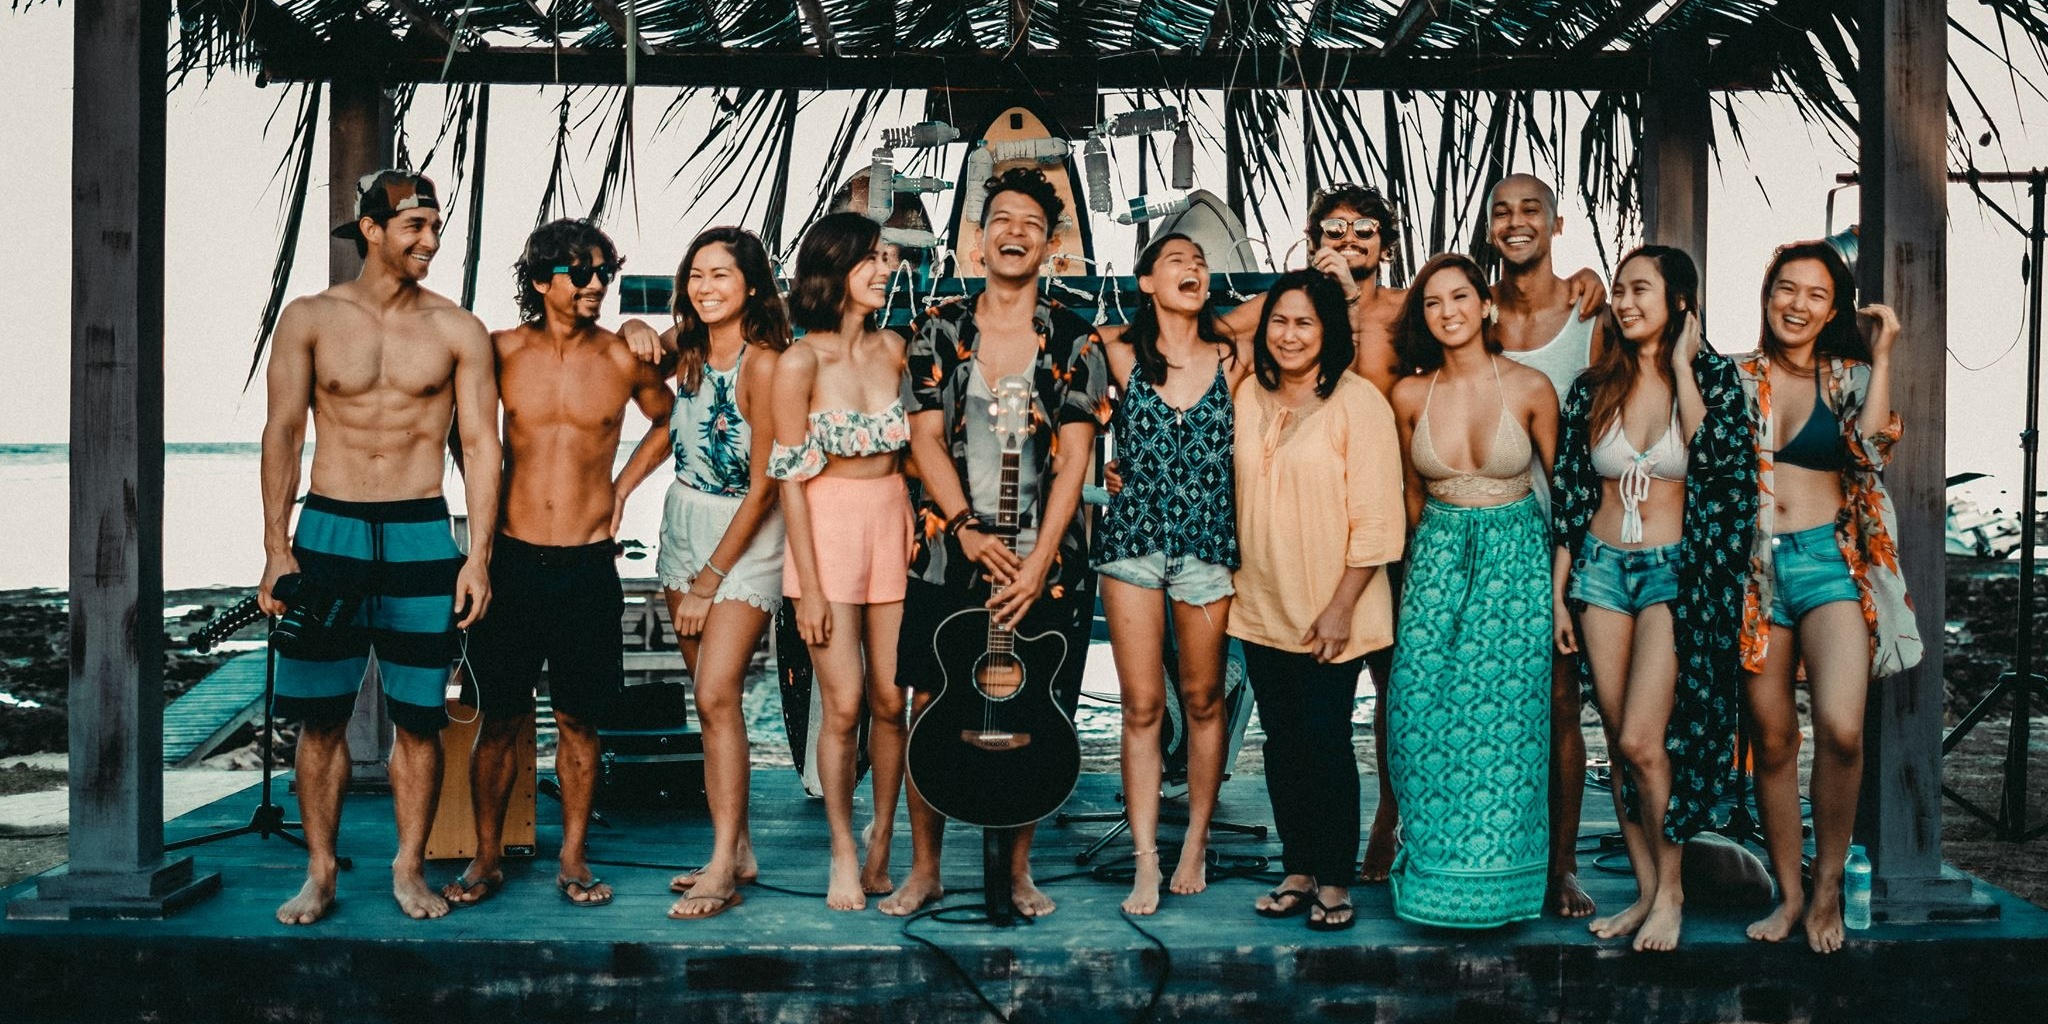 Ben&Ben, Franco, Reese Lansangan, and more featured in Siargao's original soundtrack